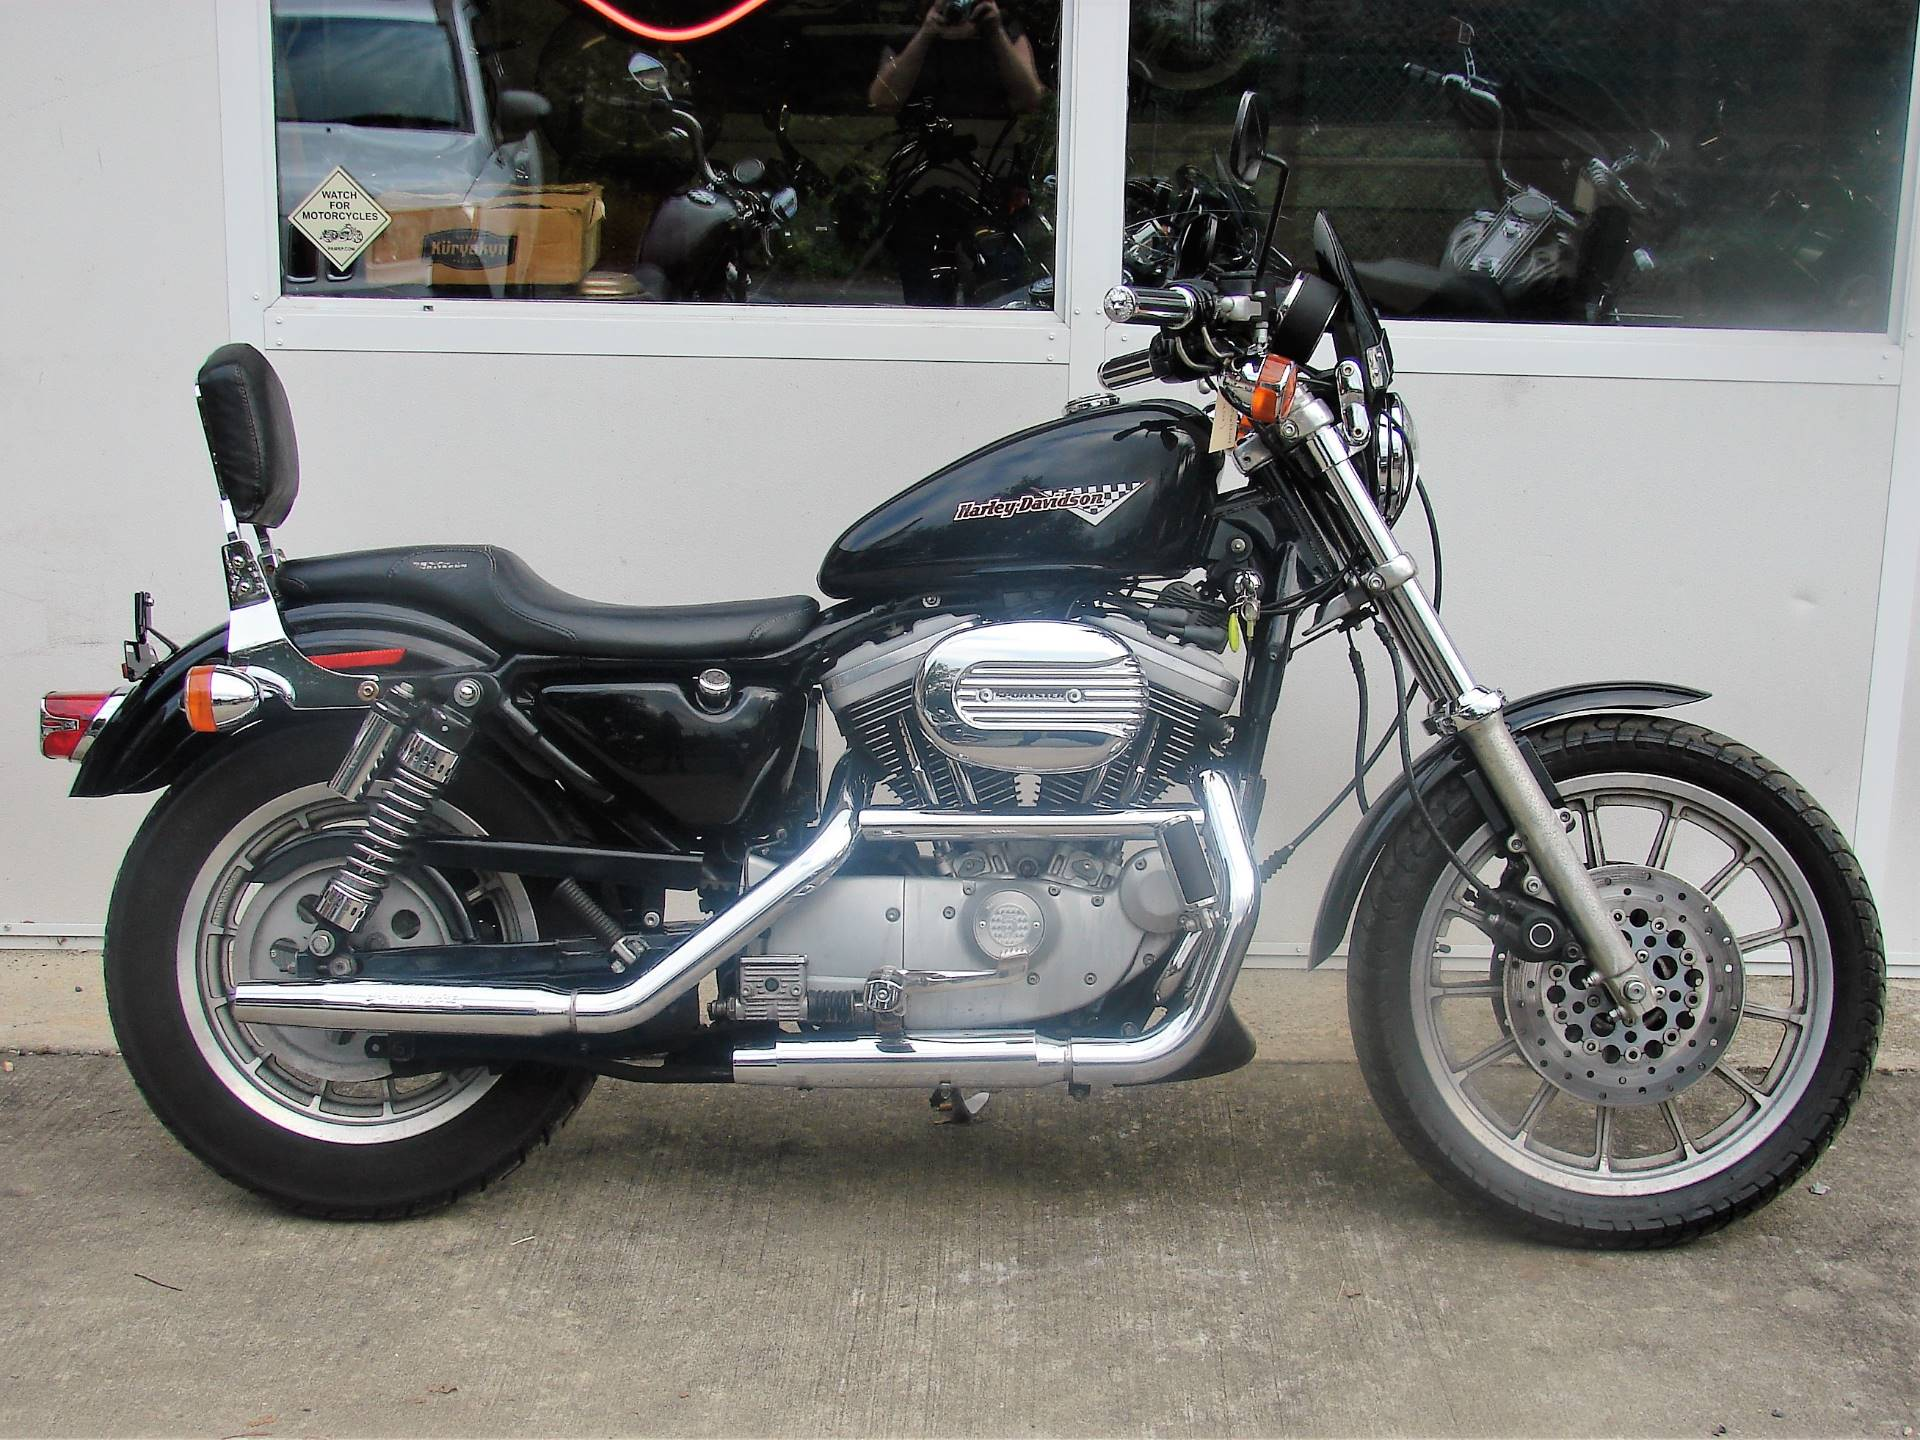 1998 Harley-Davidson XL 1200cc Sportster Sport  -  (Black w/ Maroon Logo) in Williamstown, New Jersey - Photo 11